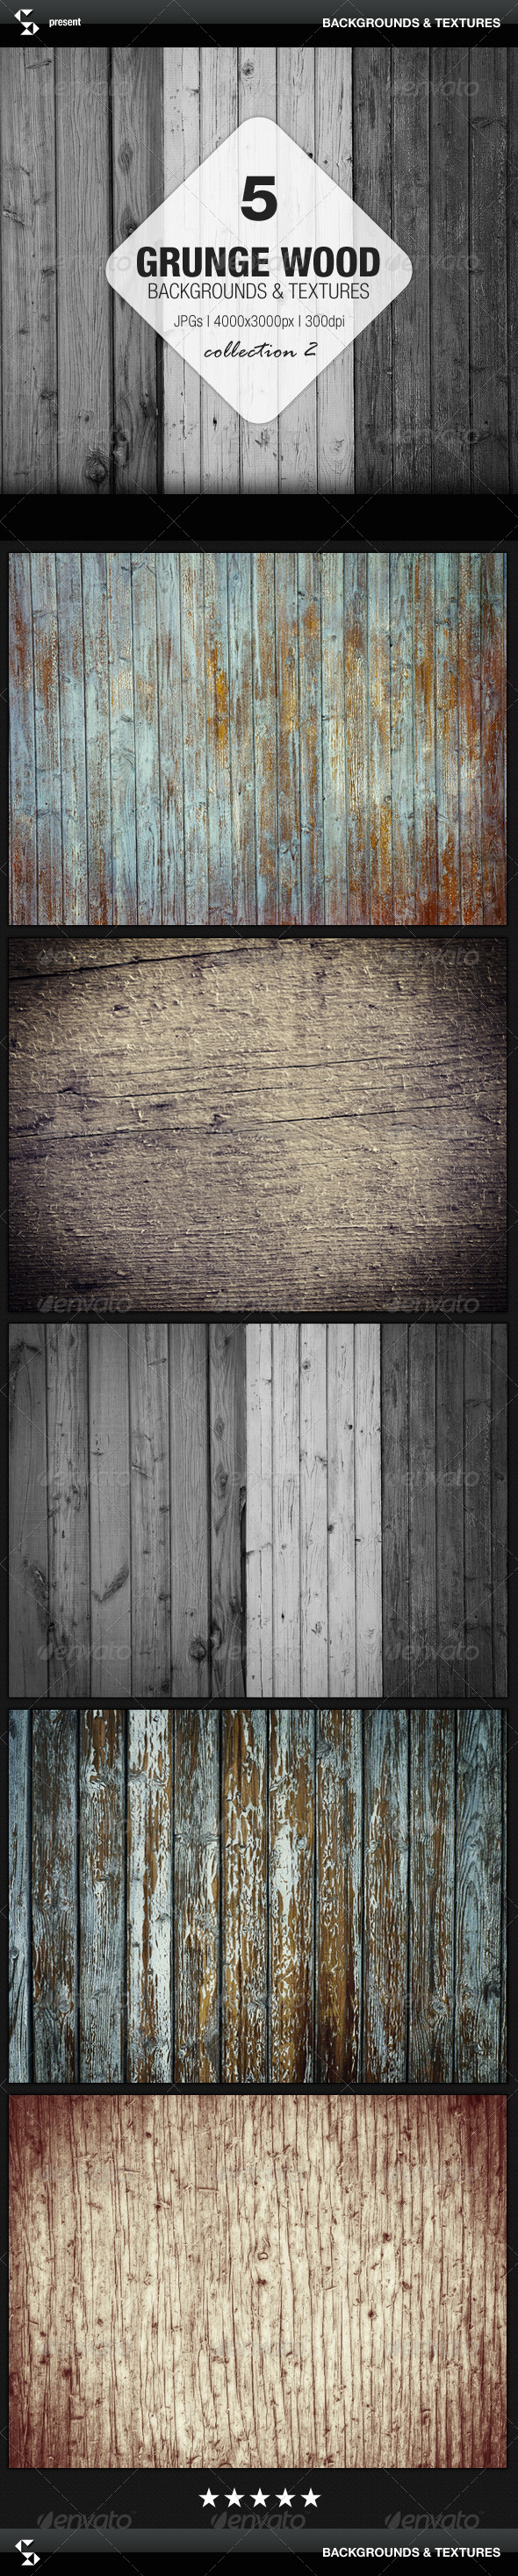 Grunge Wood Backgrounds - Collection 2 - Nature Backgrounds